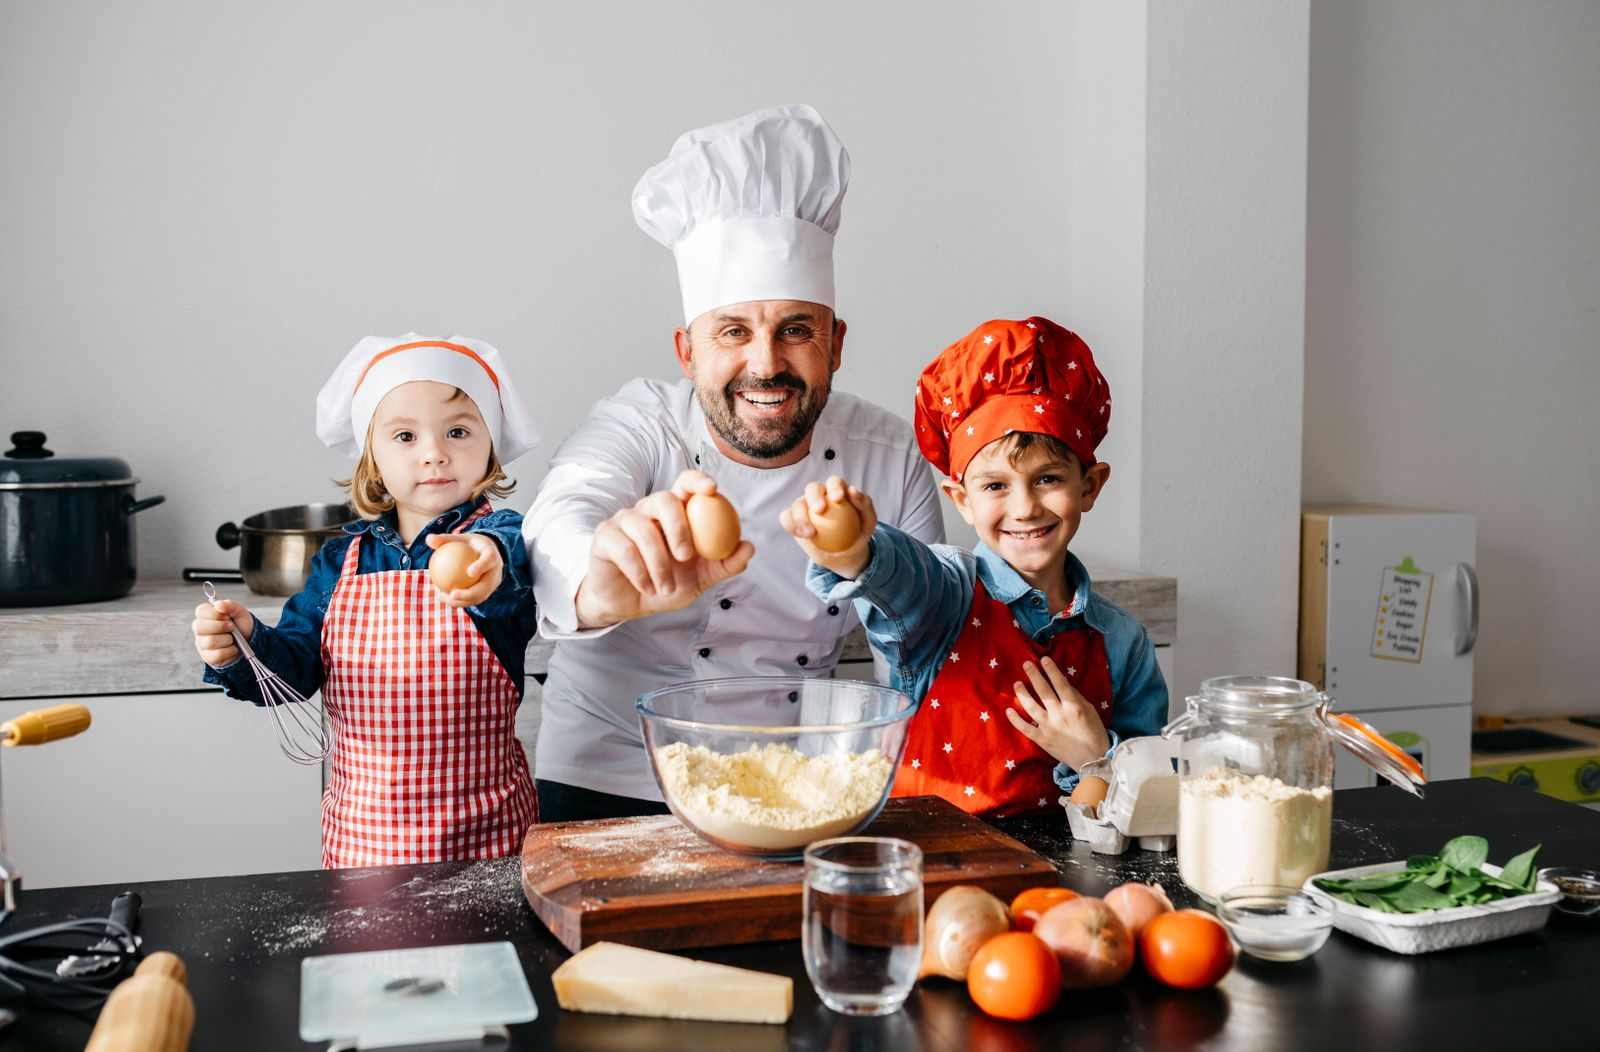 Portrait of father with two kids preparing dough in kitchen at home model released Symbolfoto property released JRFF0427